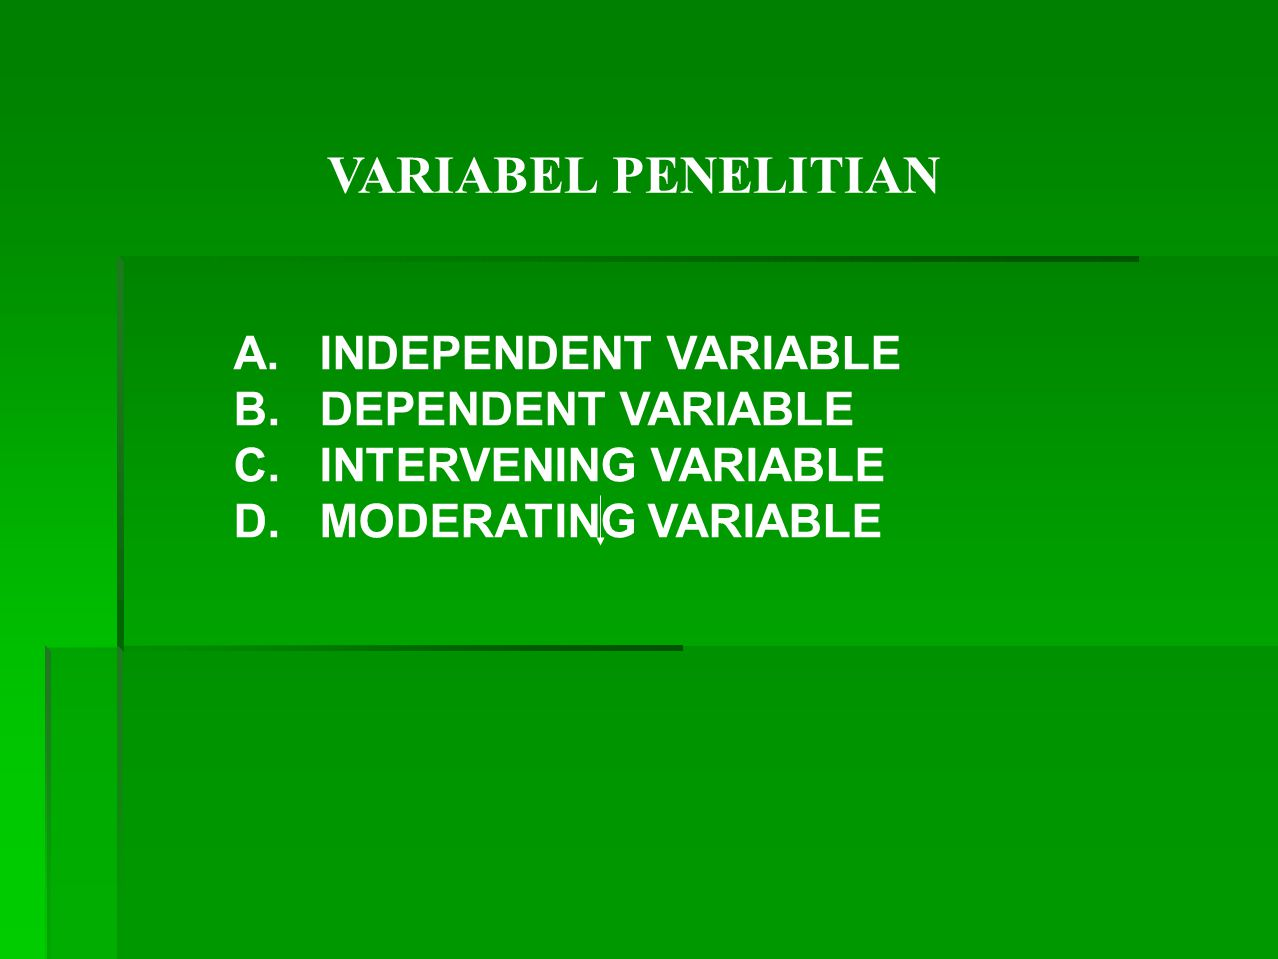 VARIABEL PENELITIAN A. INDEPENDENT VARIABLE B. DEPENDENT VARIABLE